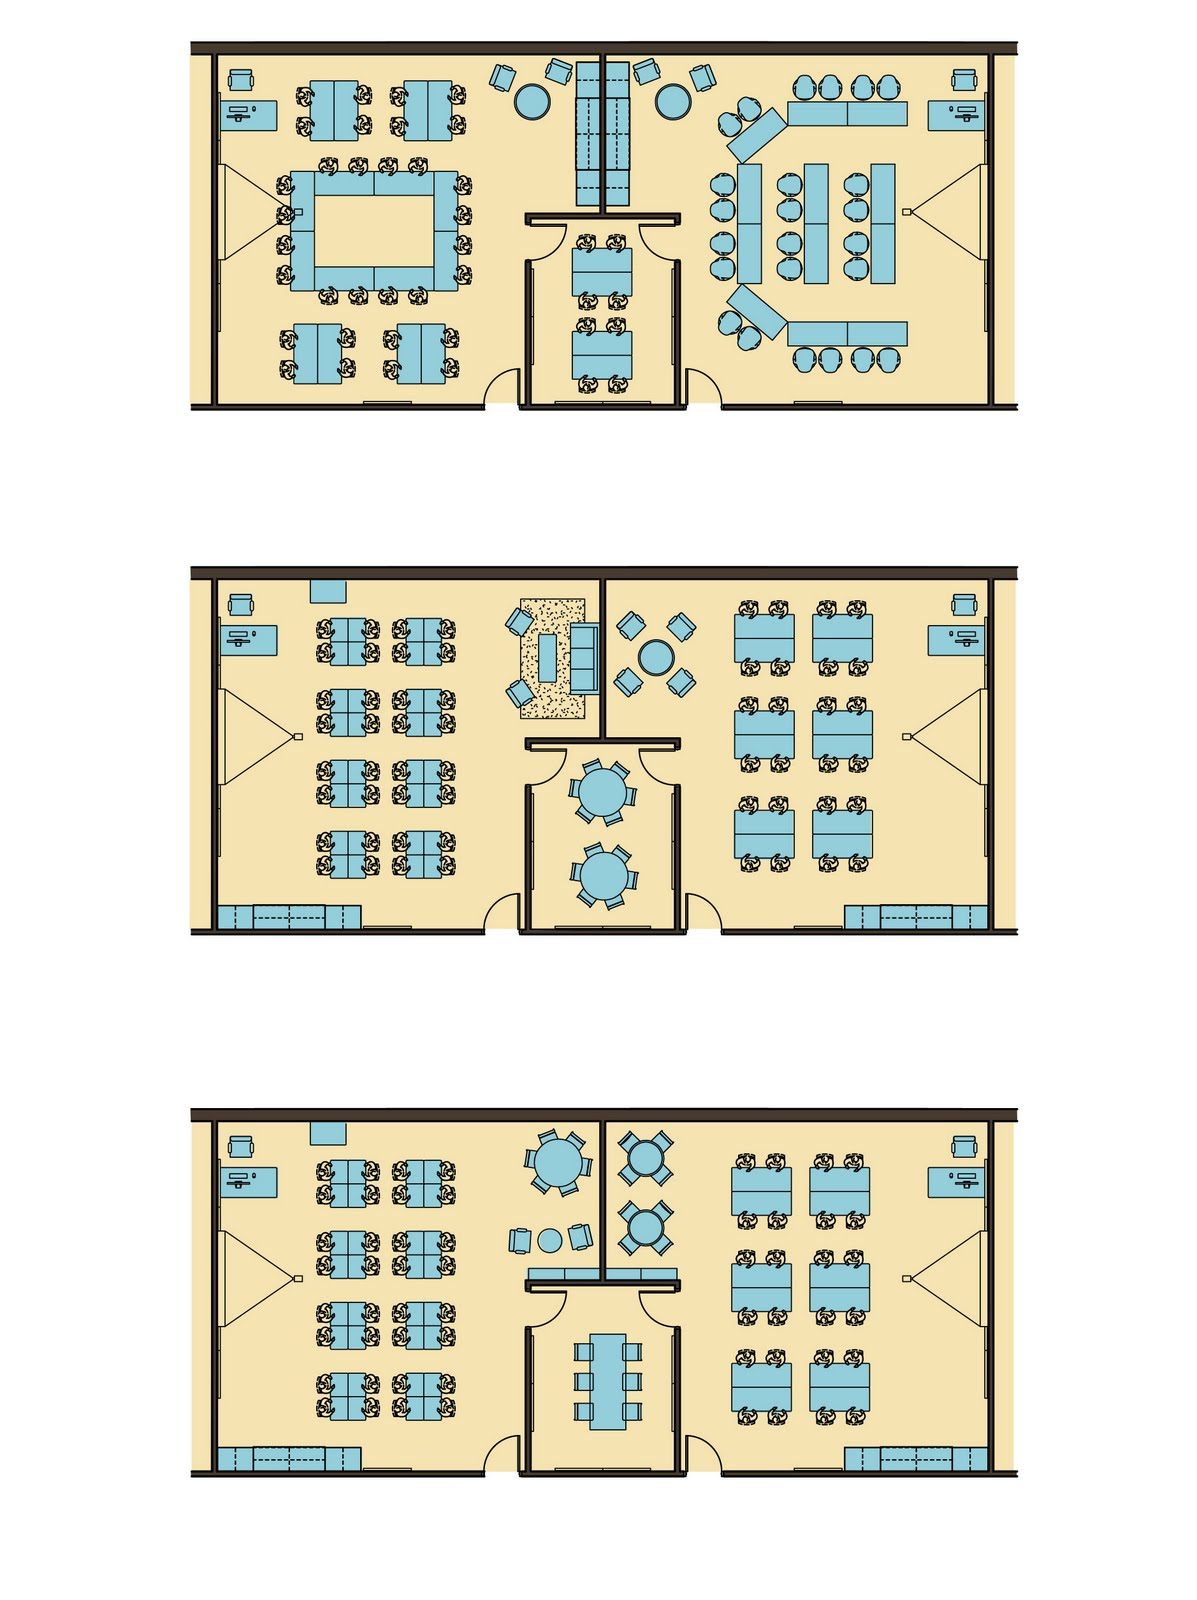 Classroom Layouts For Middle School : Bedford high school classroom layout options